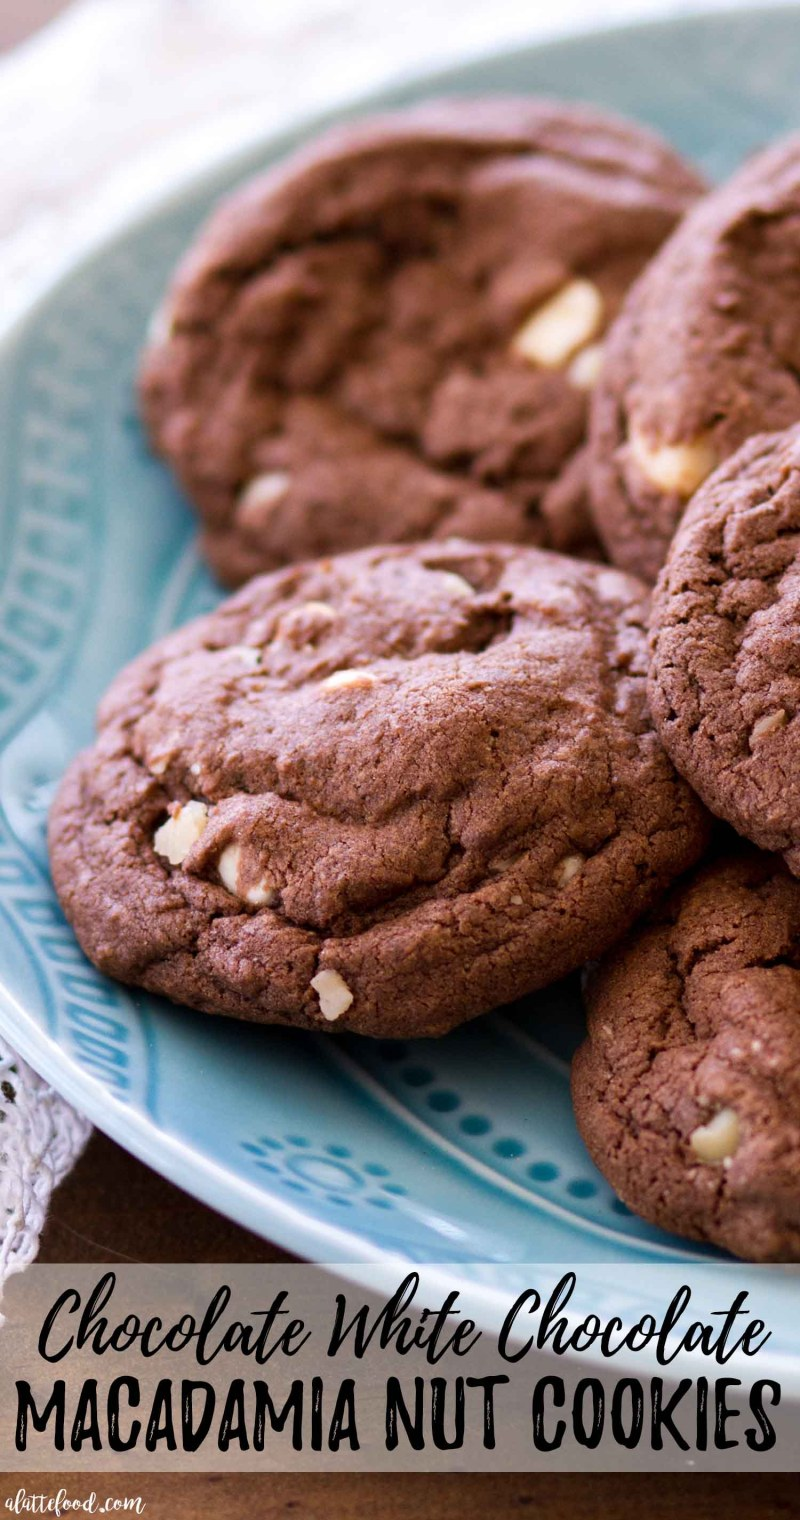 These Chocolate White Chocolate Macadamia Nut Cookies are extra rich, extra chocolatey, and extra good! Double Chocolate Chip Cookies meet White Chocolate Macadamia Nut Cookies for a match made in chocolate cookie heaven! These cookies are chewy in the center with slightly crispy edges—they're practically perfect! I love classic White Chocolate Chip Macadamia Nut Cookies, but Double Chocolate Chip Cookies are my ultimate weakness! chewy white chocolate chip cookies, no chill cookie recipe, best chocolate chip cookies